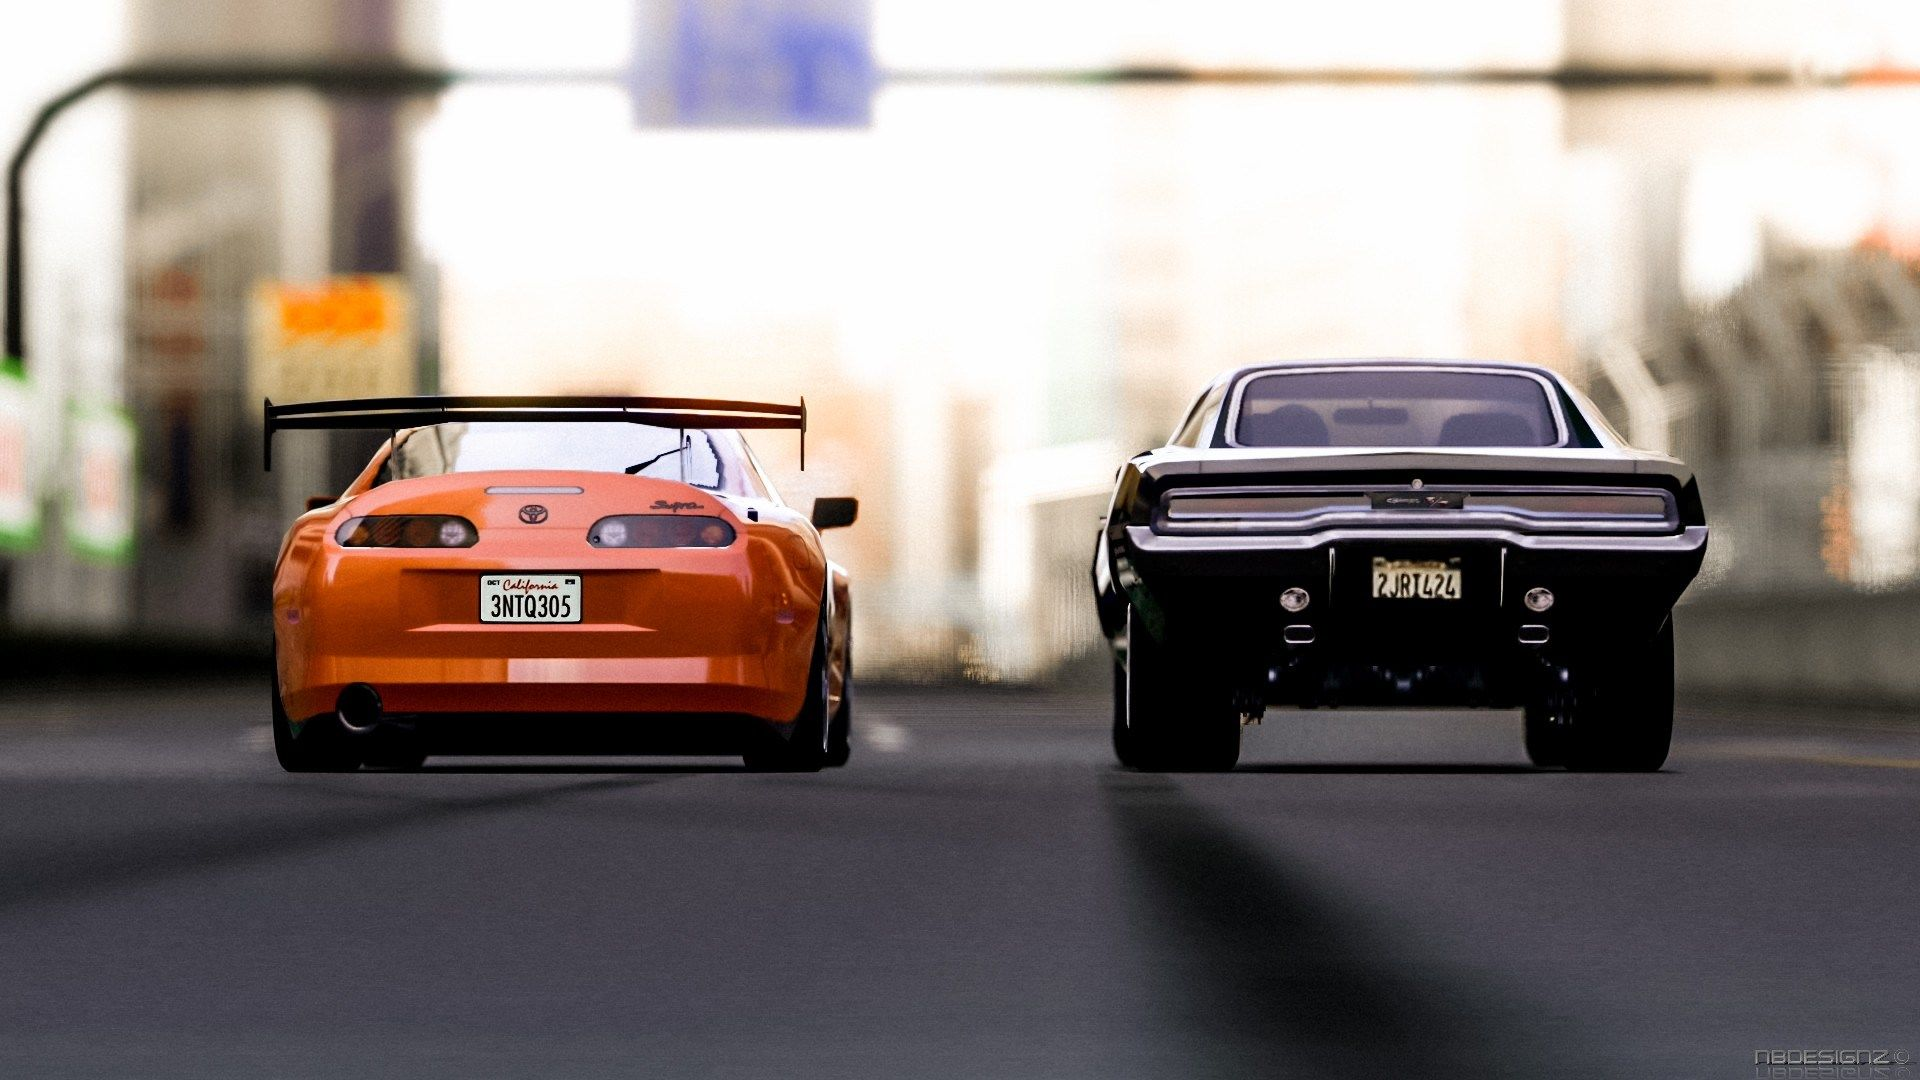 Toyota Supra Fast And Furious Wallpaper Gran Turismo Velozes E